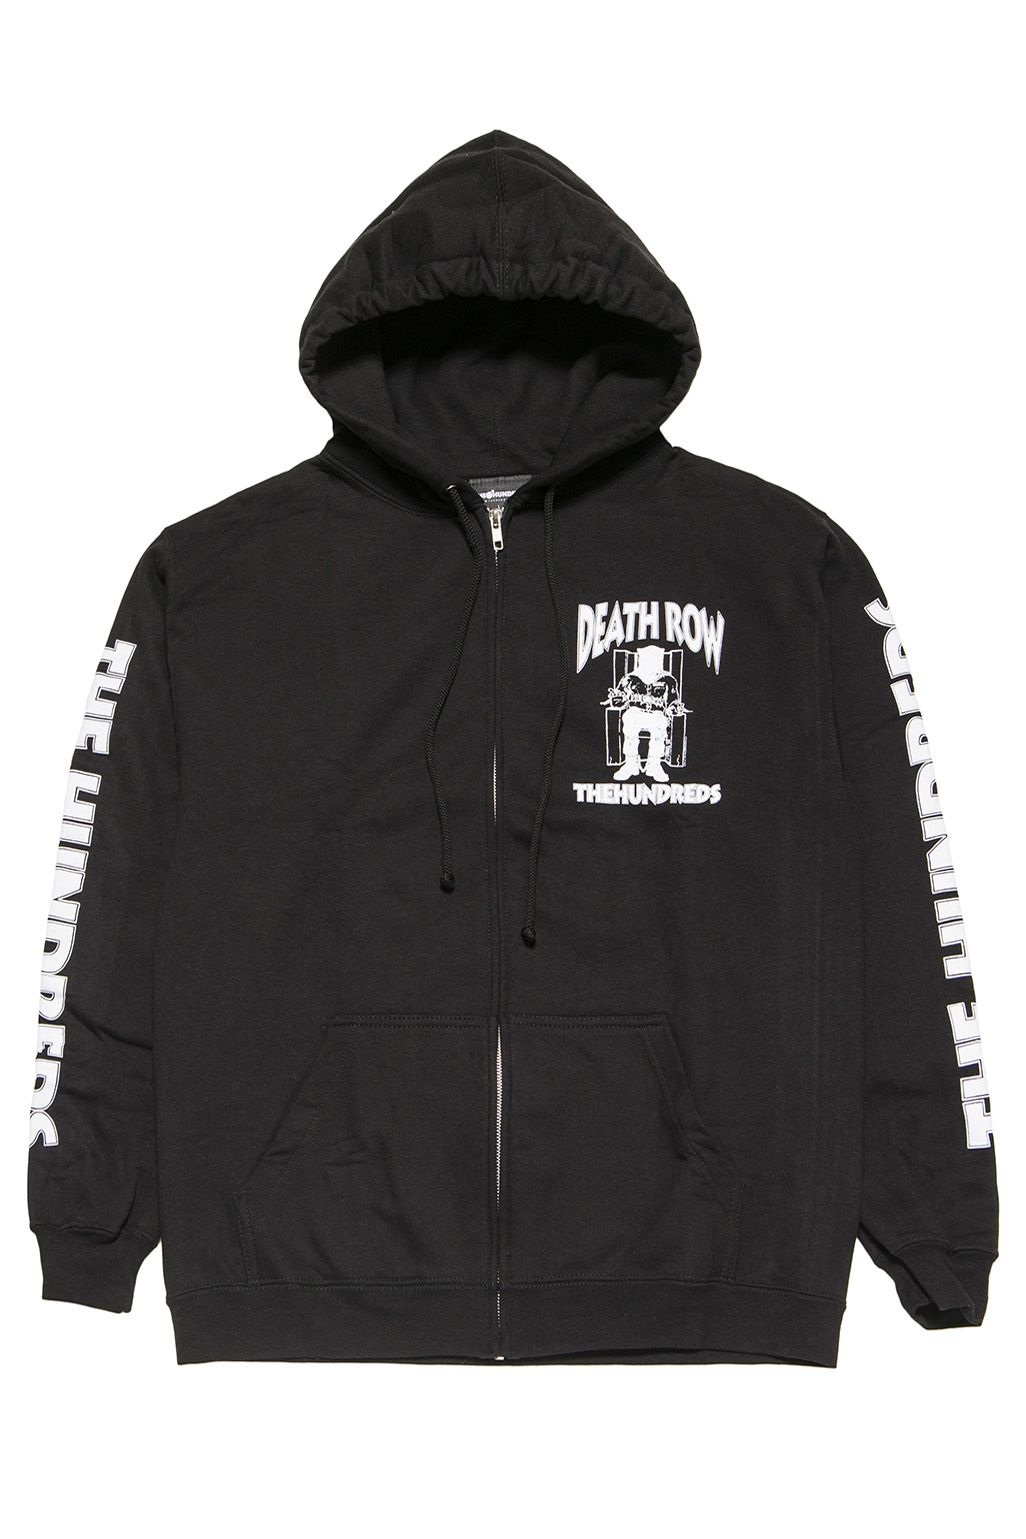 Hoodie - The Hundreds x Death Row